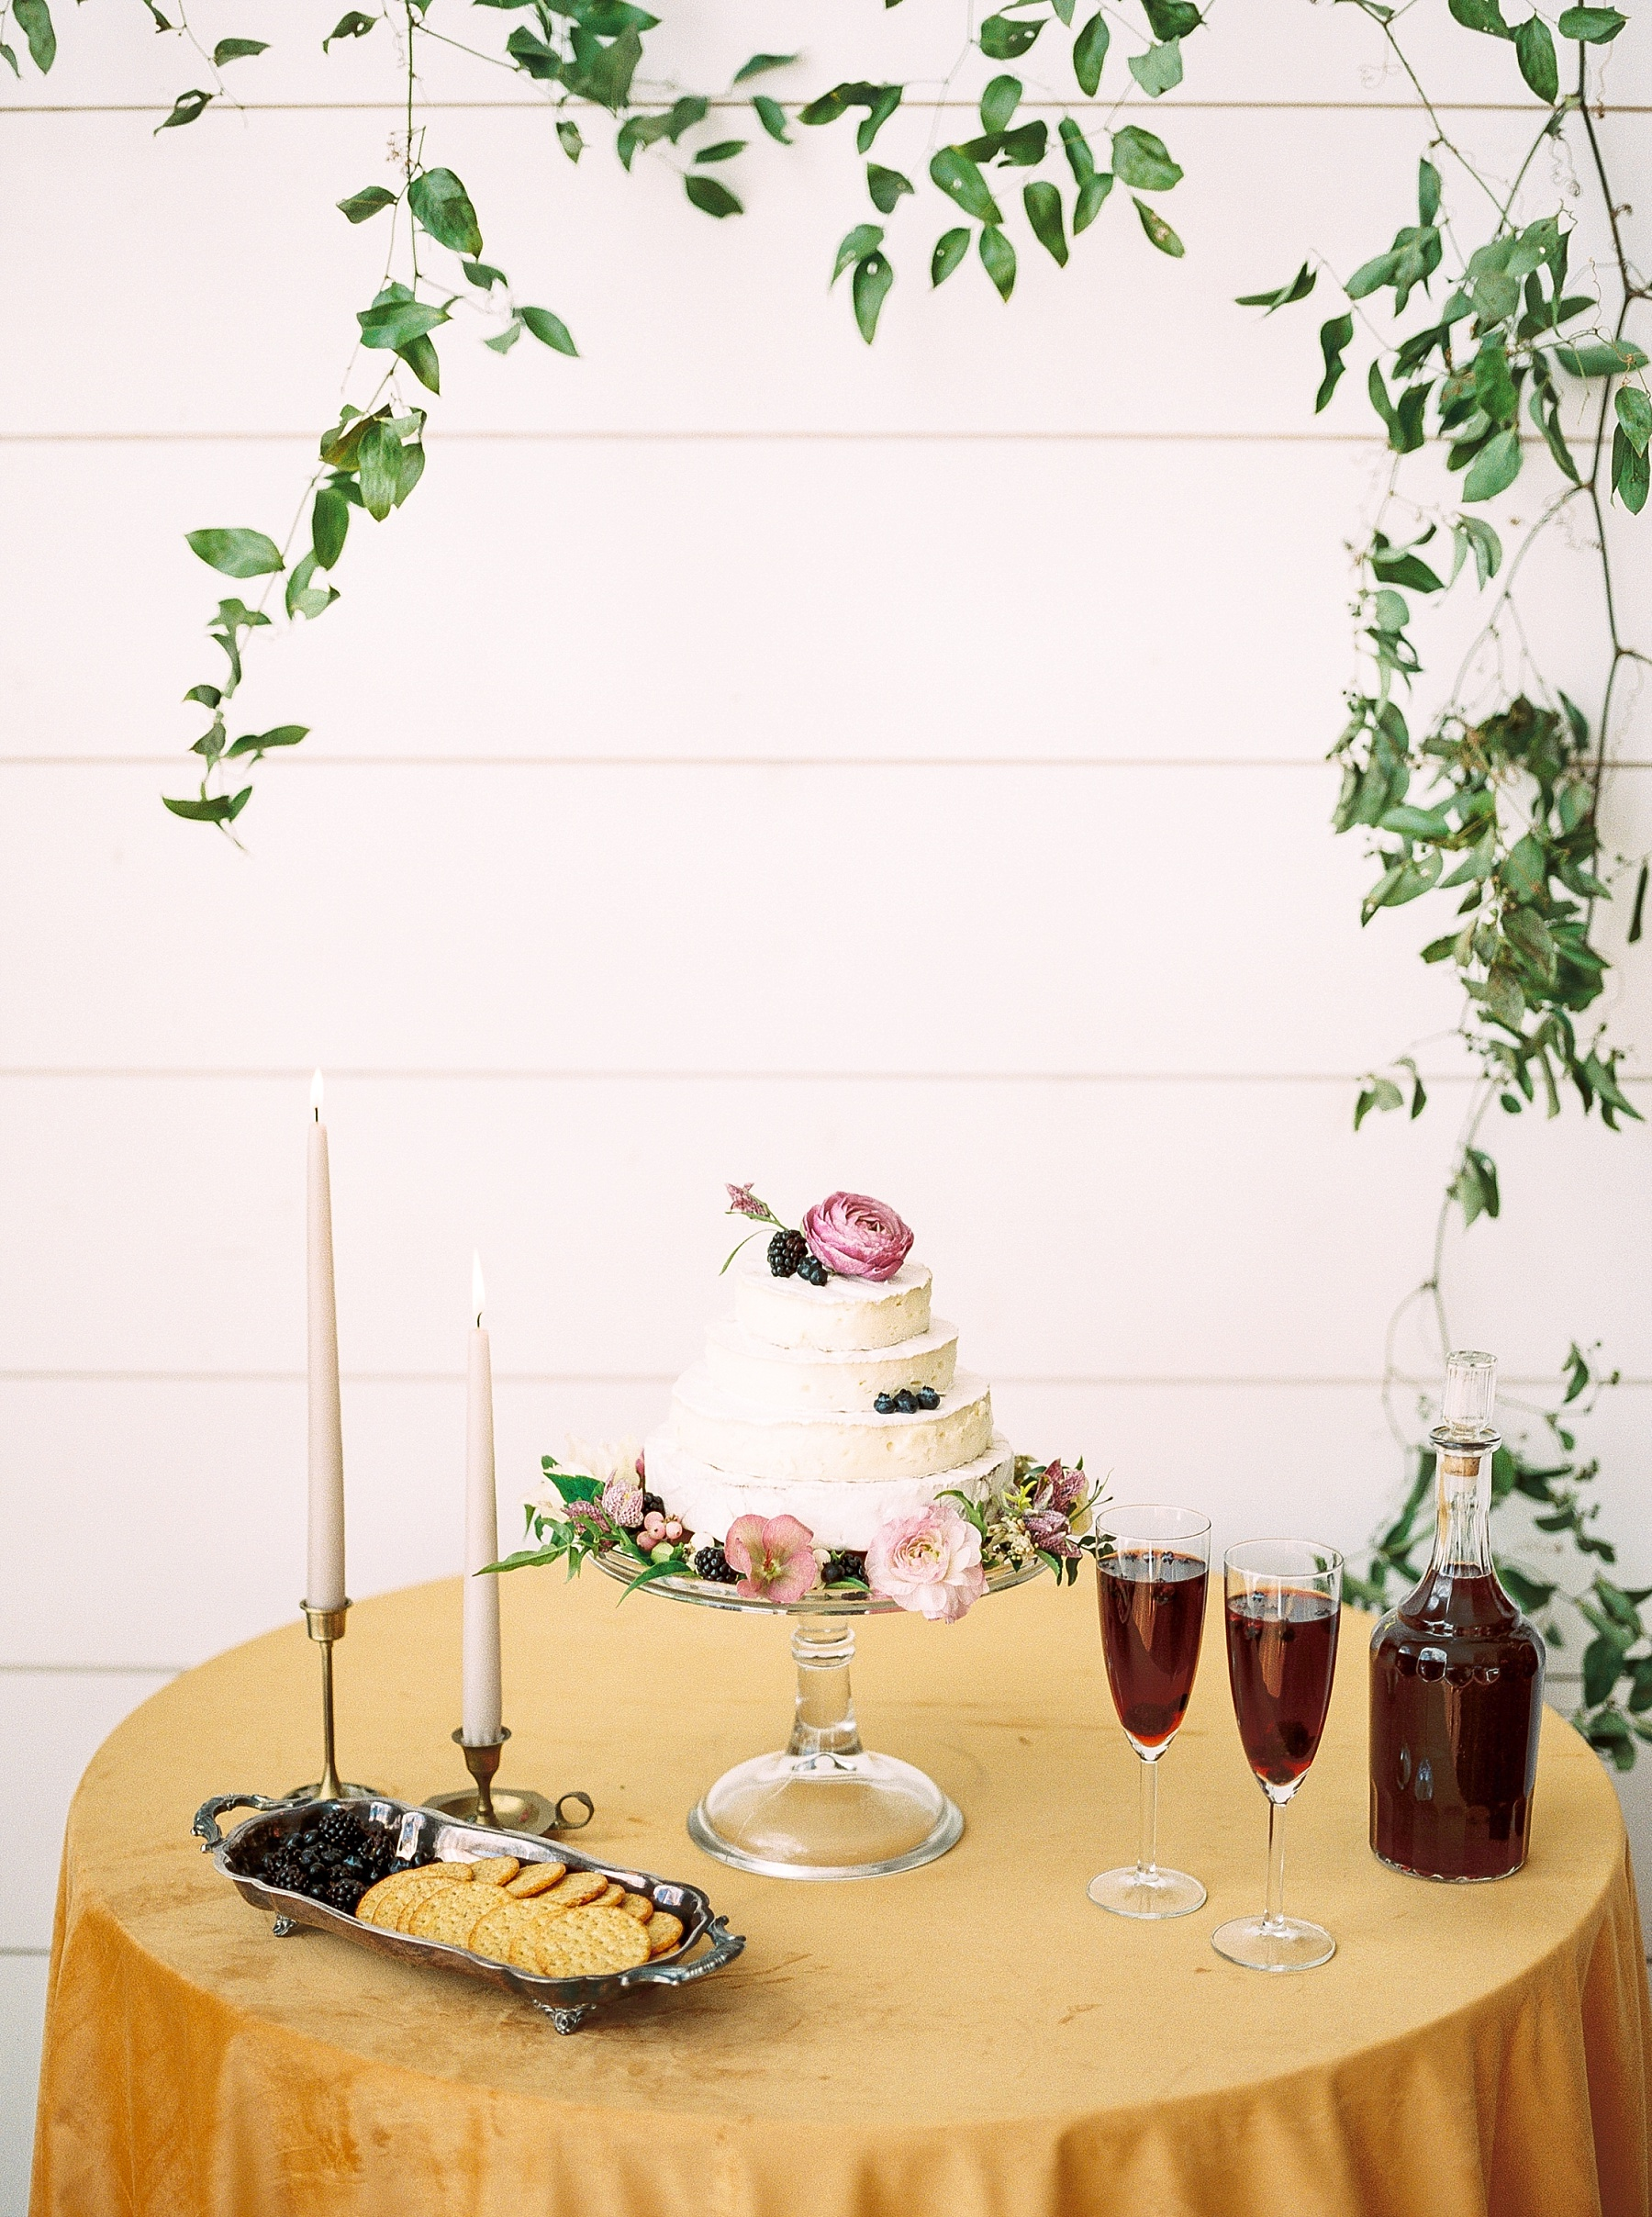 Intimate Lakeside Elopement at Emerson Fields All White Wedding Venue by Kelsi Kliethermes Photography Best Missouri and Maui Wedding Photographer_0015.jpg